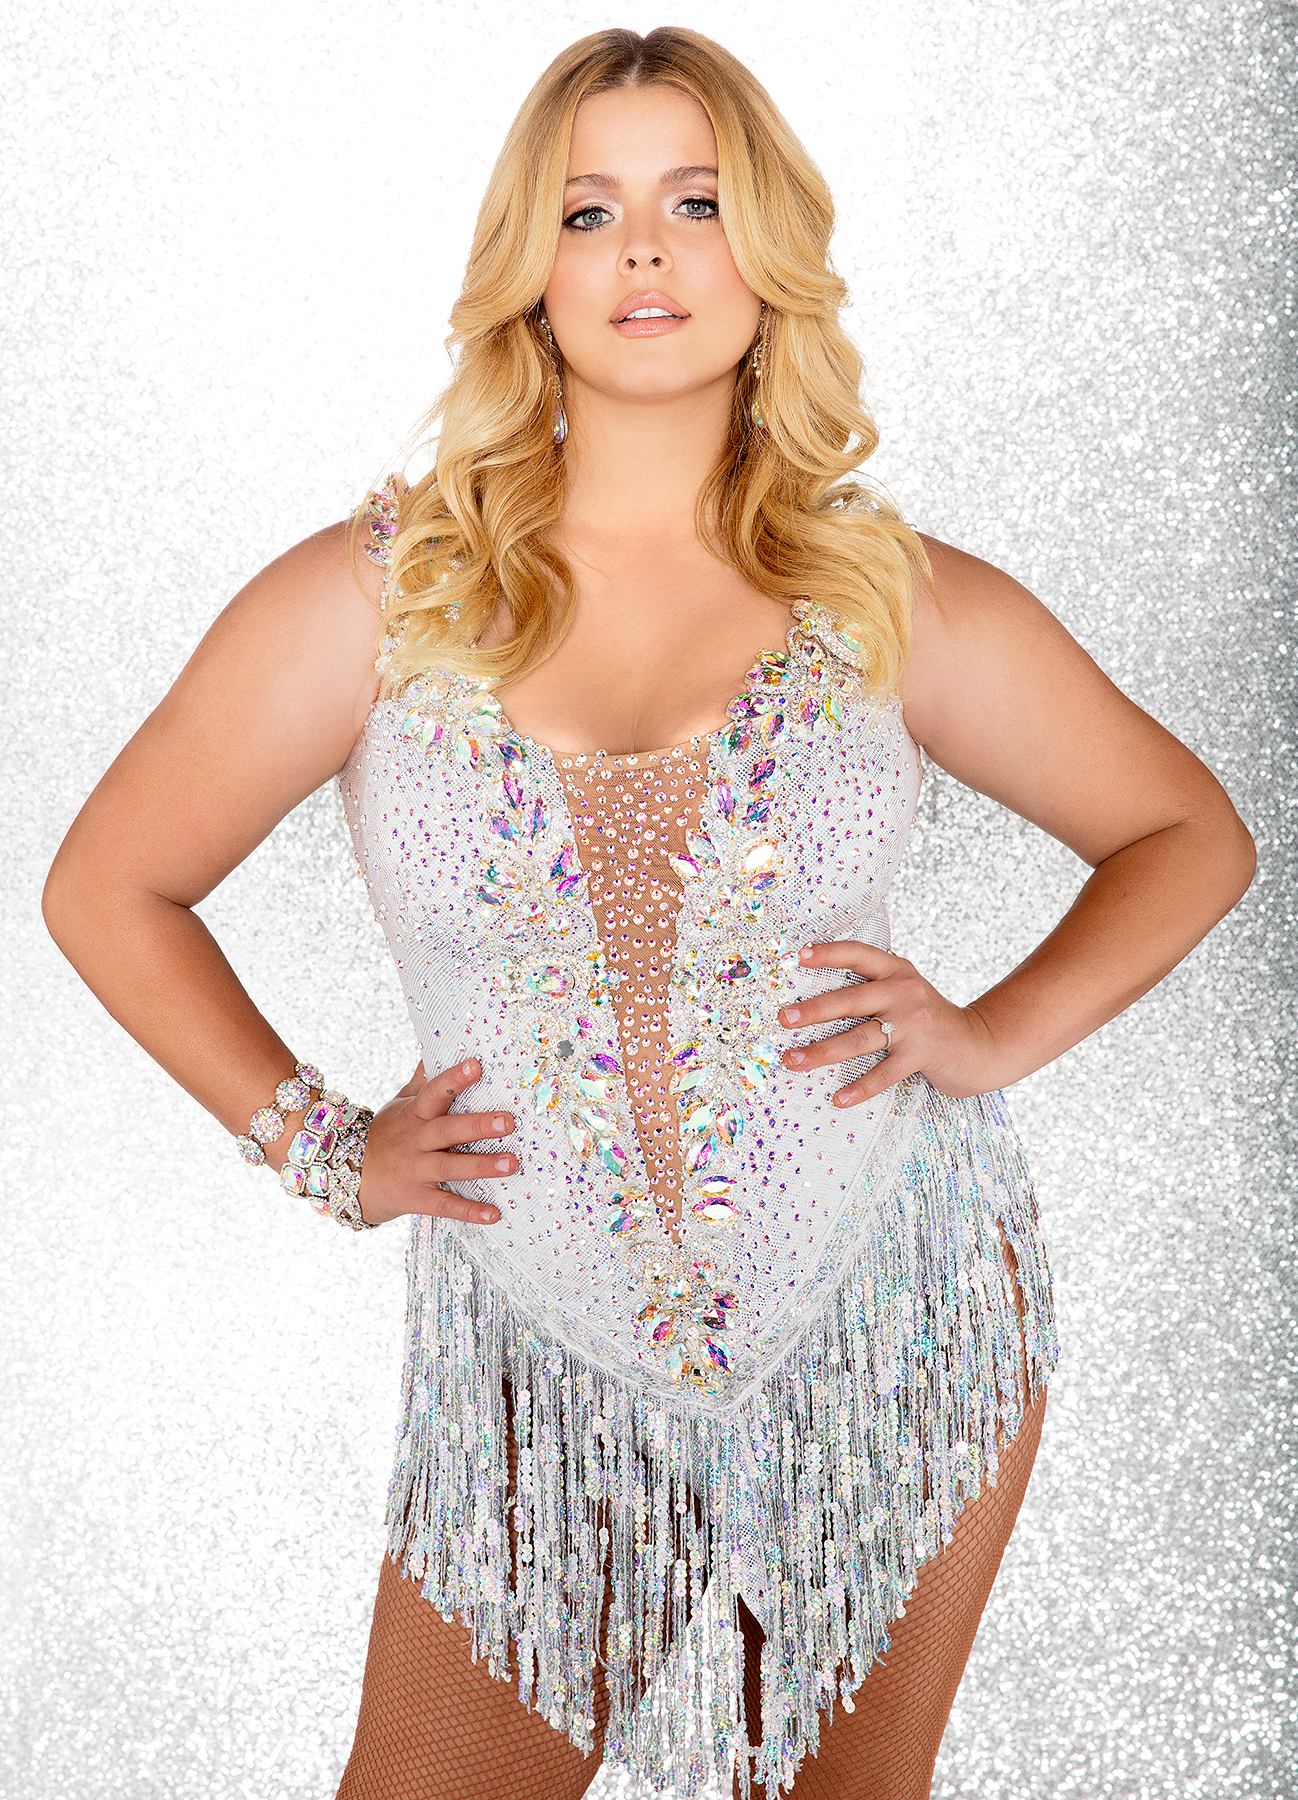 Sasha Pieterse weight loss Dancing With the Stars DWTS